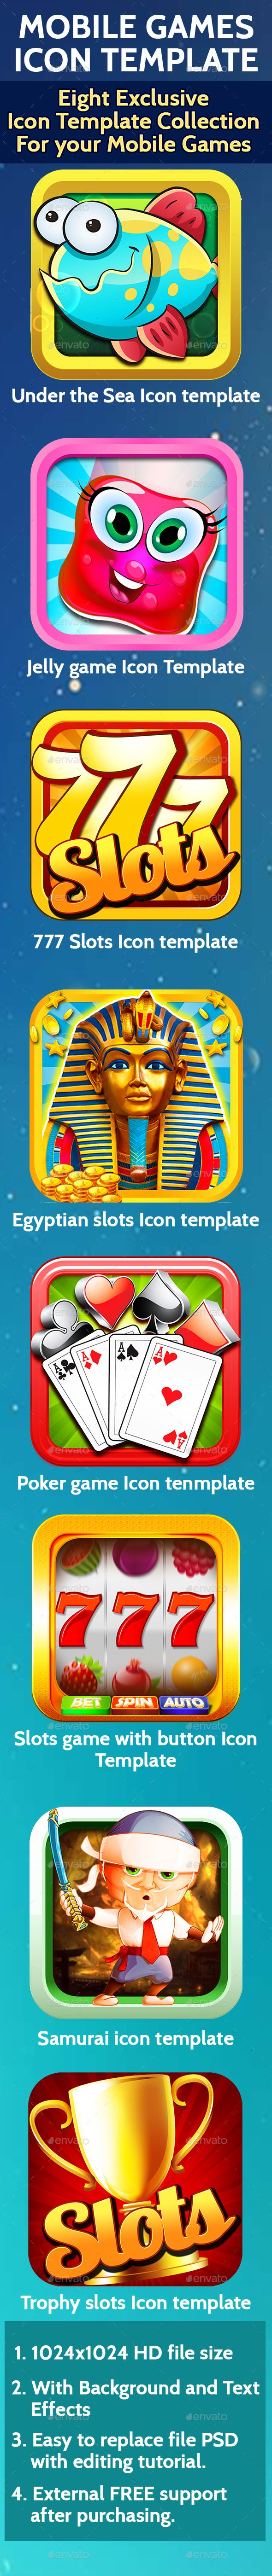 Mobile Game Icon Templates for iOS & Android - #Icons